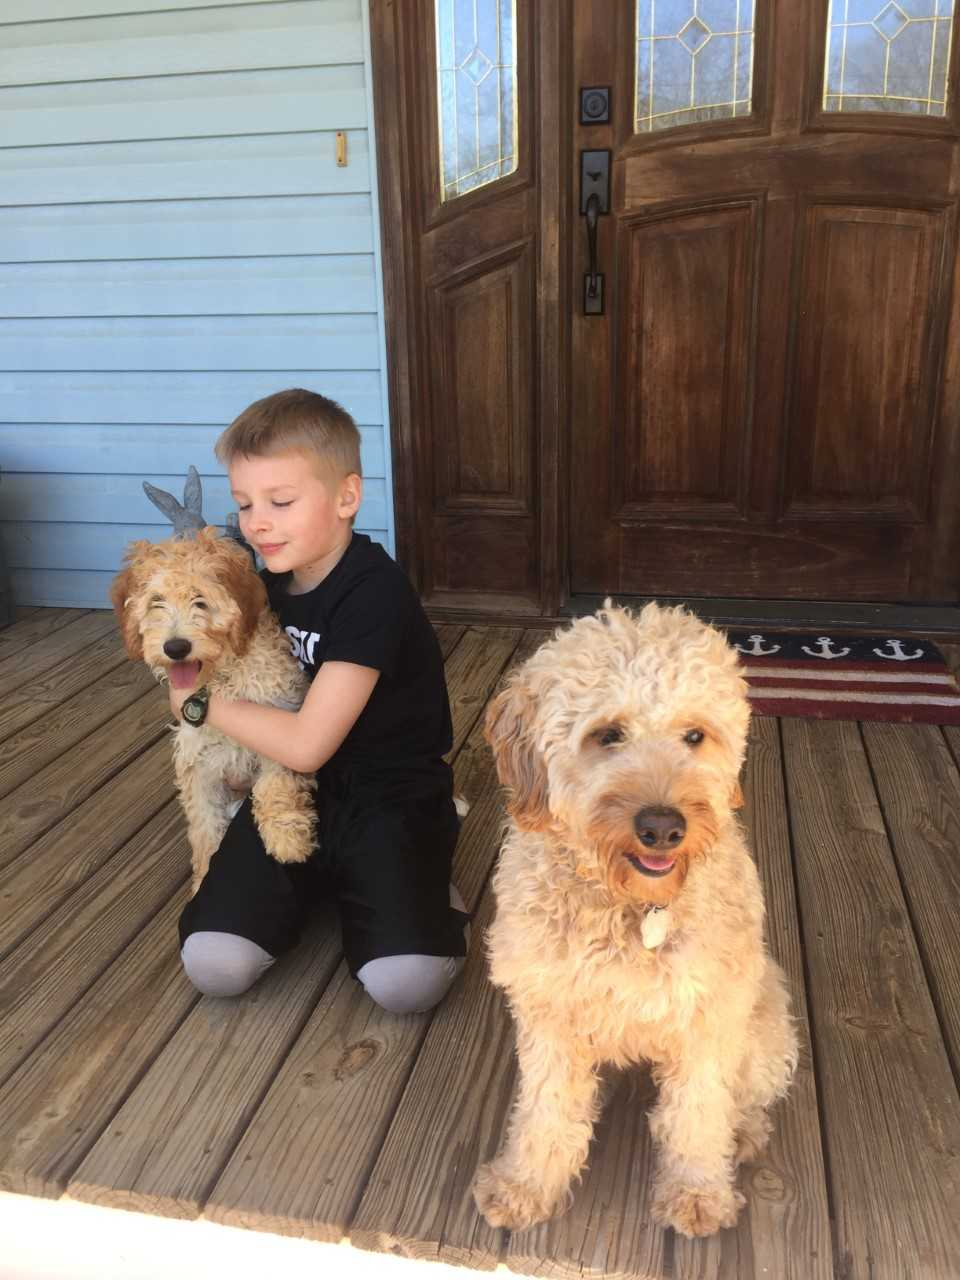 Lucy, the mini Goldendoodle mom